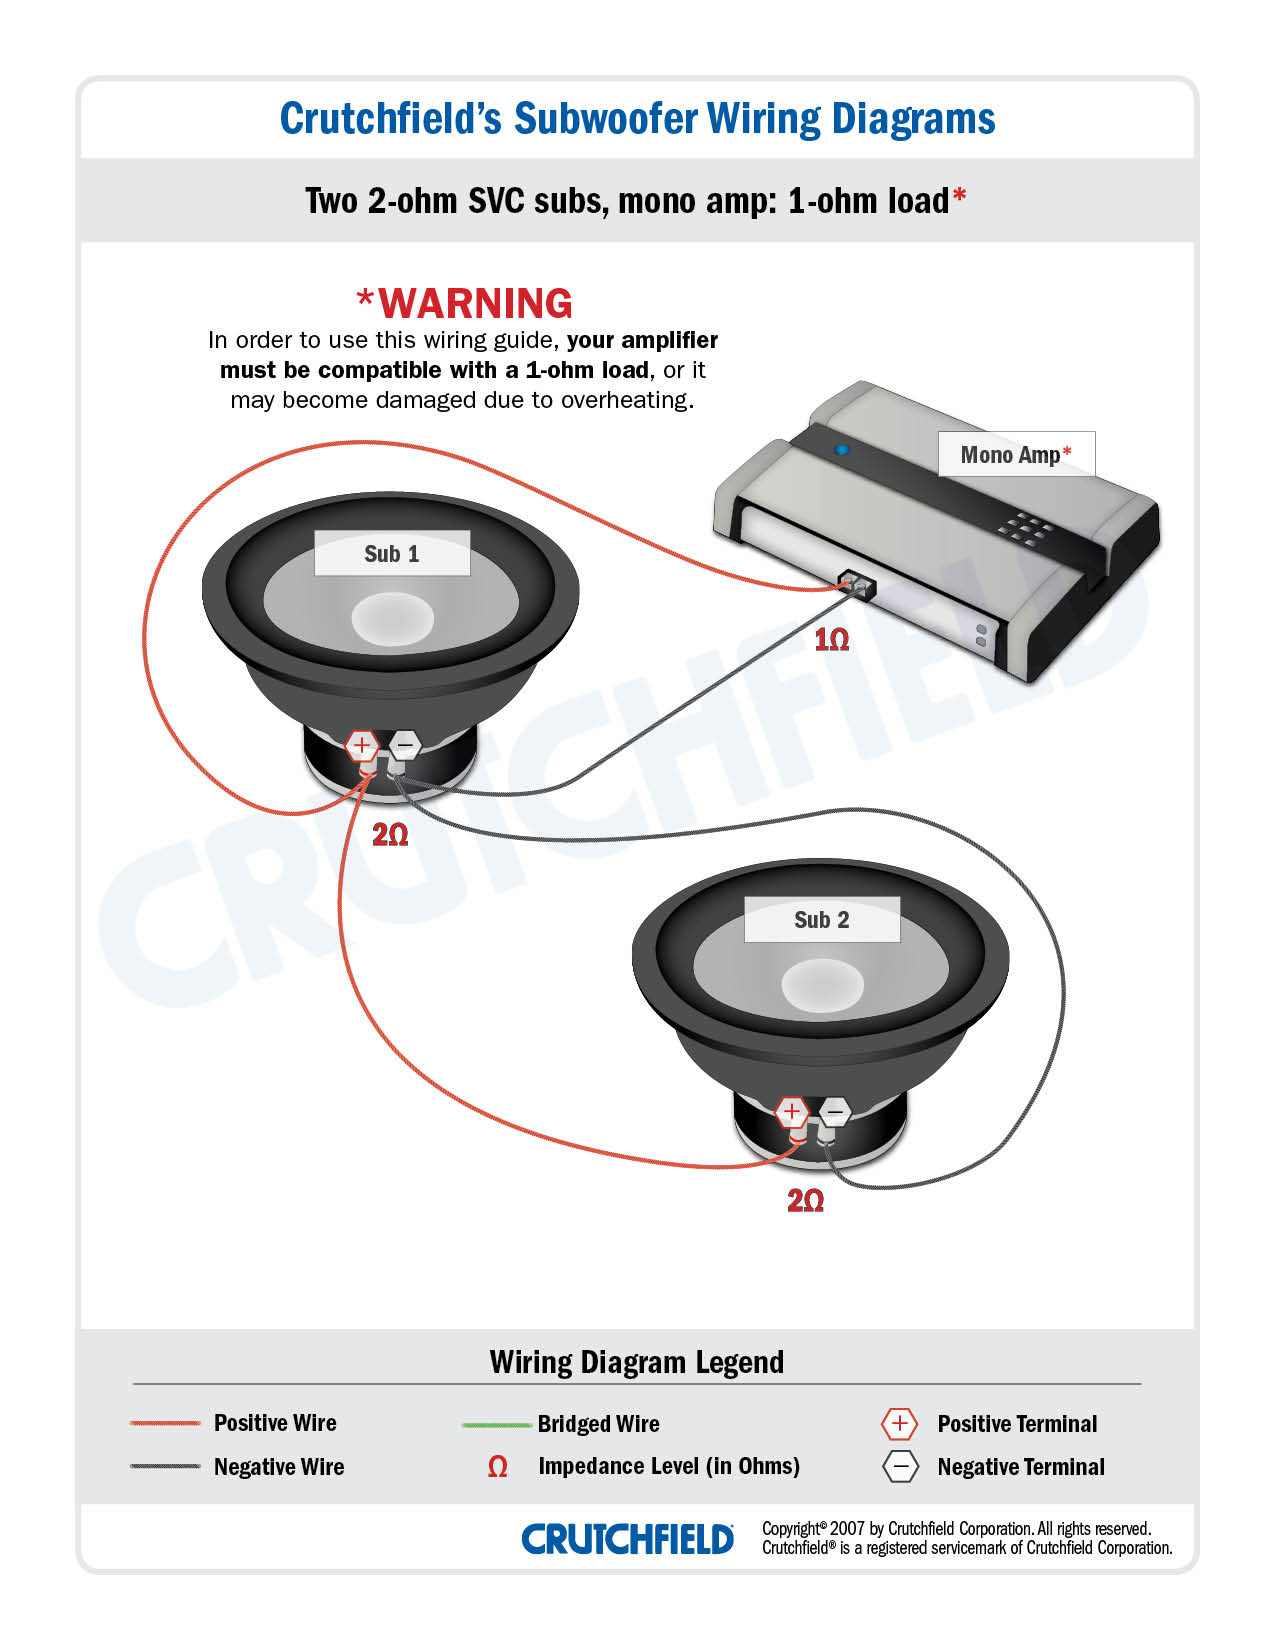 2 SVC 2 ohm mono low imp subwoofer wiring diagrams kicker l7 wiring diagram at bayanpartner.co